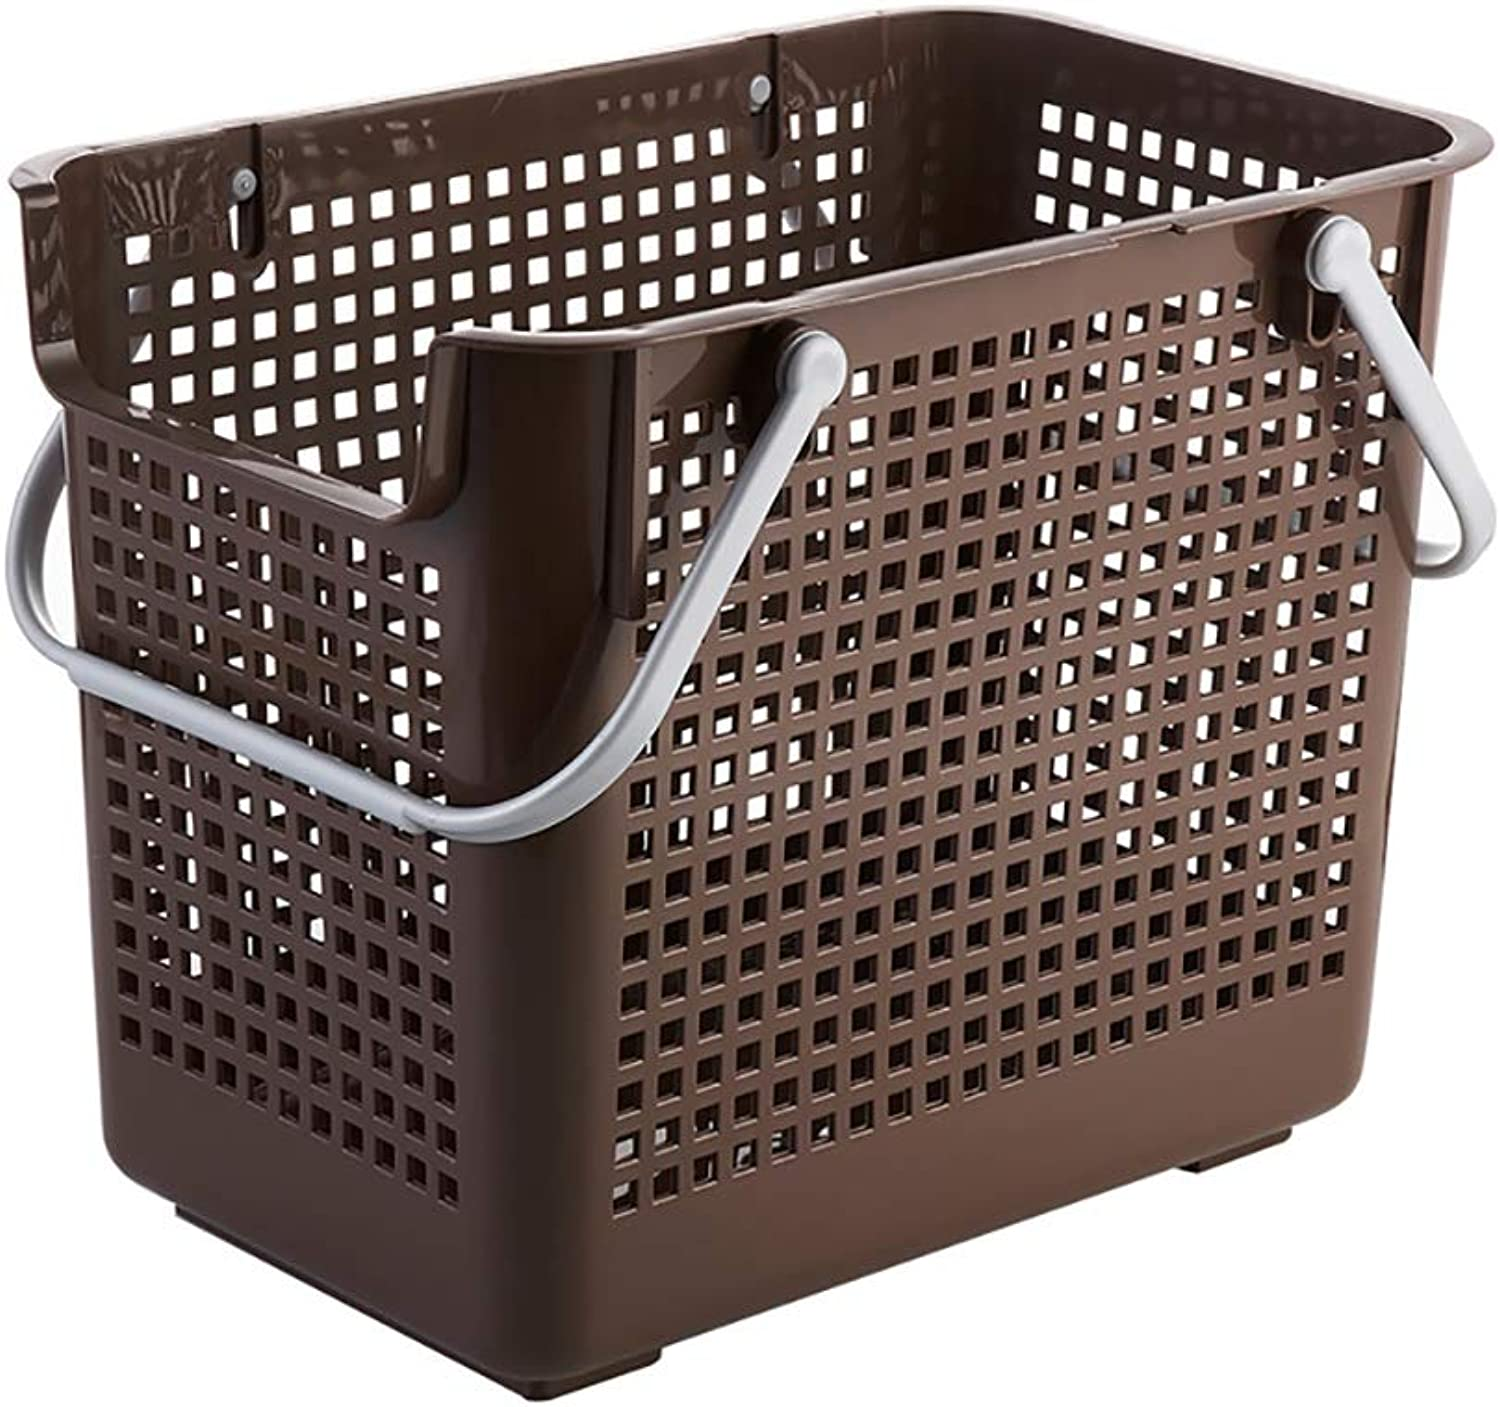 FANGFA Storage Baskets Plastic Bathroom Living Room Clothes Laundry Basket with Handle with Pulley with lid (2 colors, 4 (color   Brown, Size   44  30  38cm)